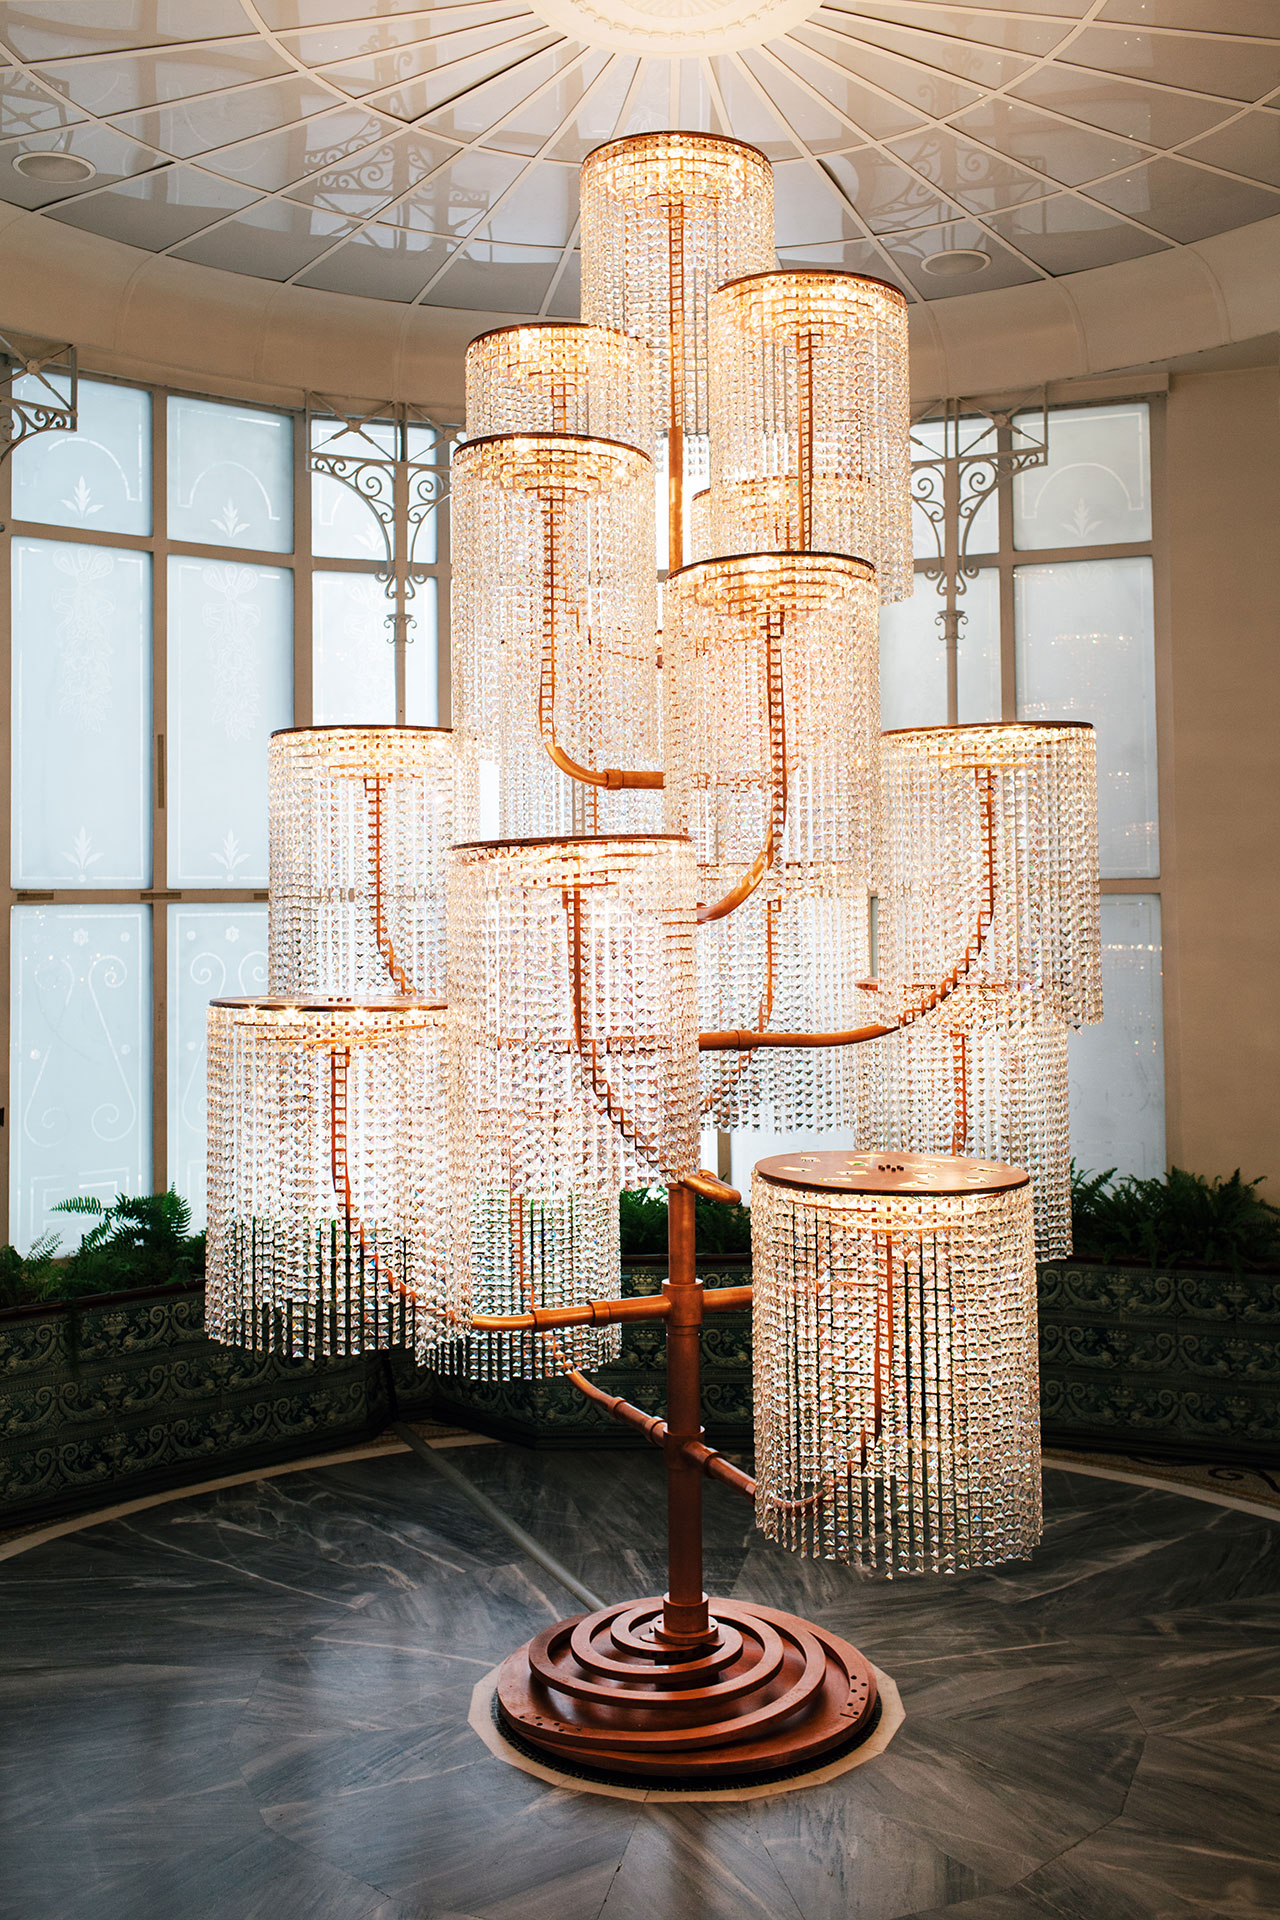 Chandelier, 2015. Copper, crystal and light fixtures, 400 x 240 x 230 cm. Photo by Paris Tavitian © Museum of Cycladic Art.